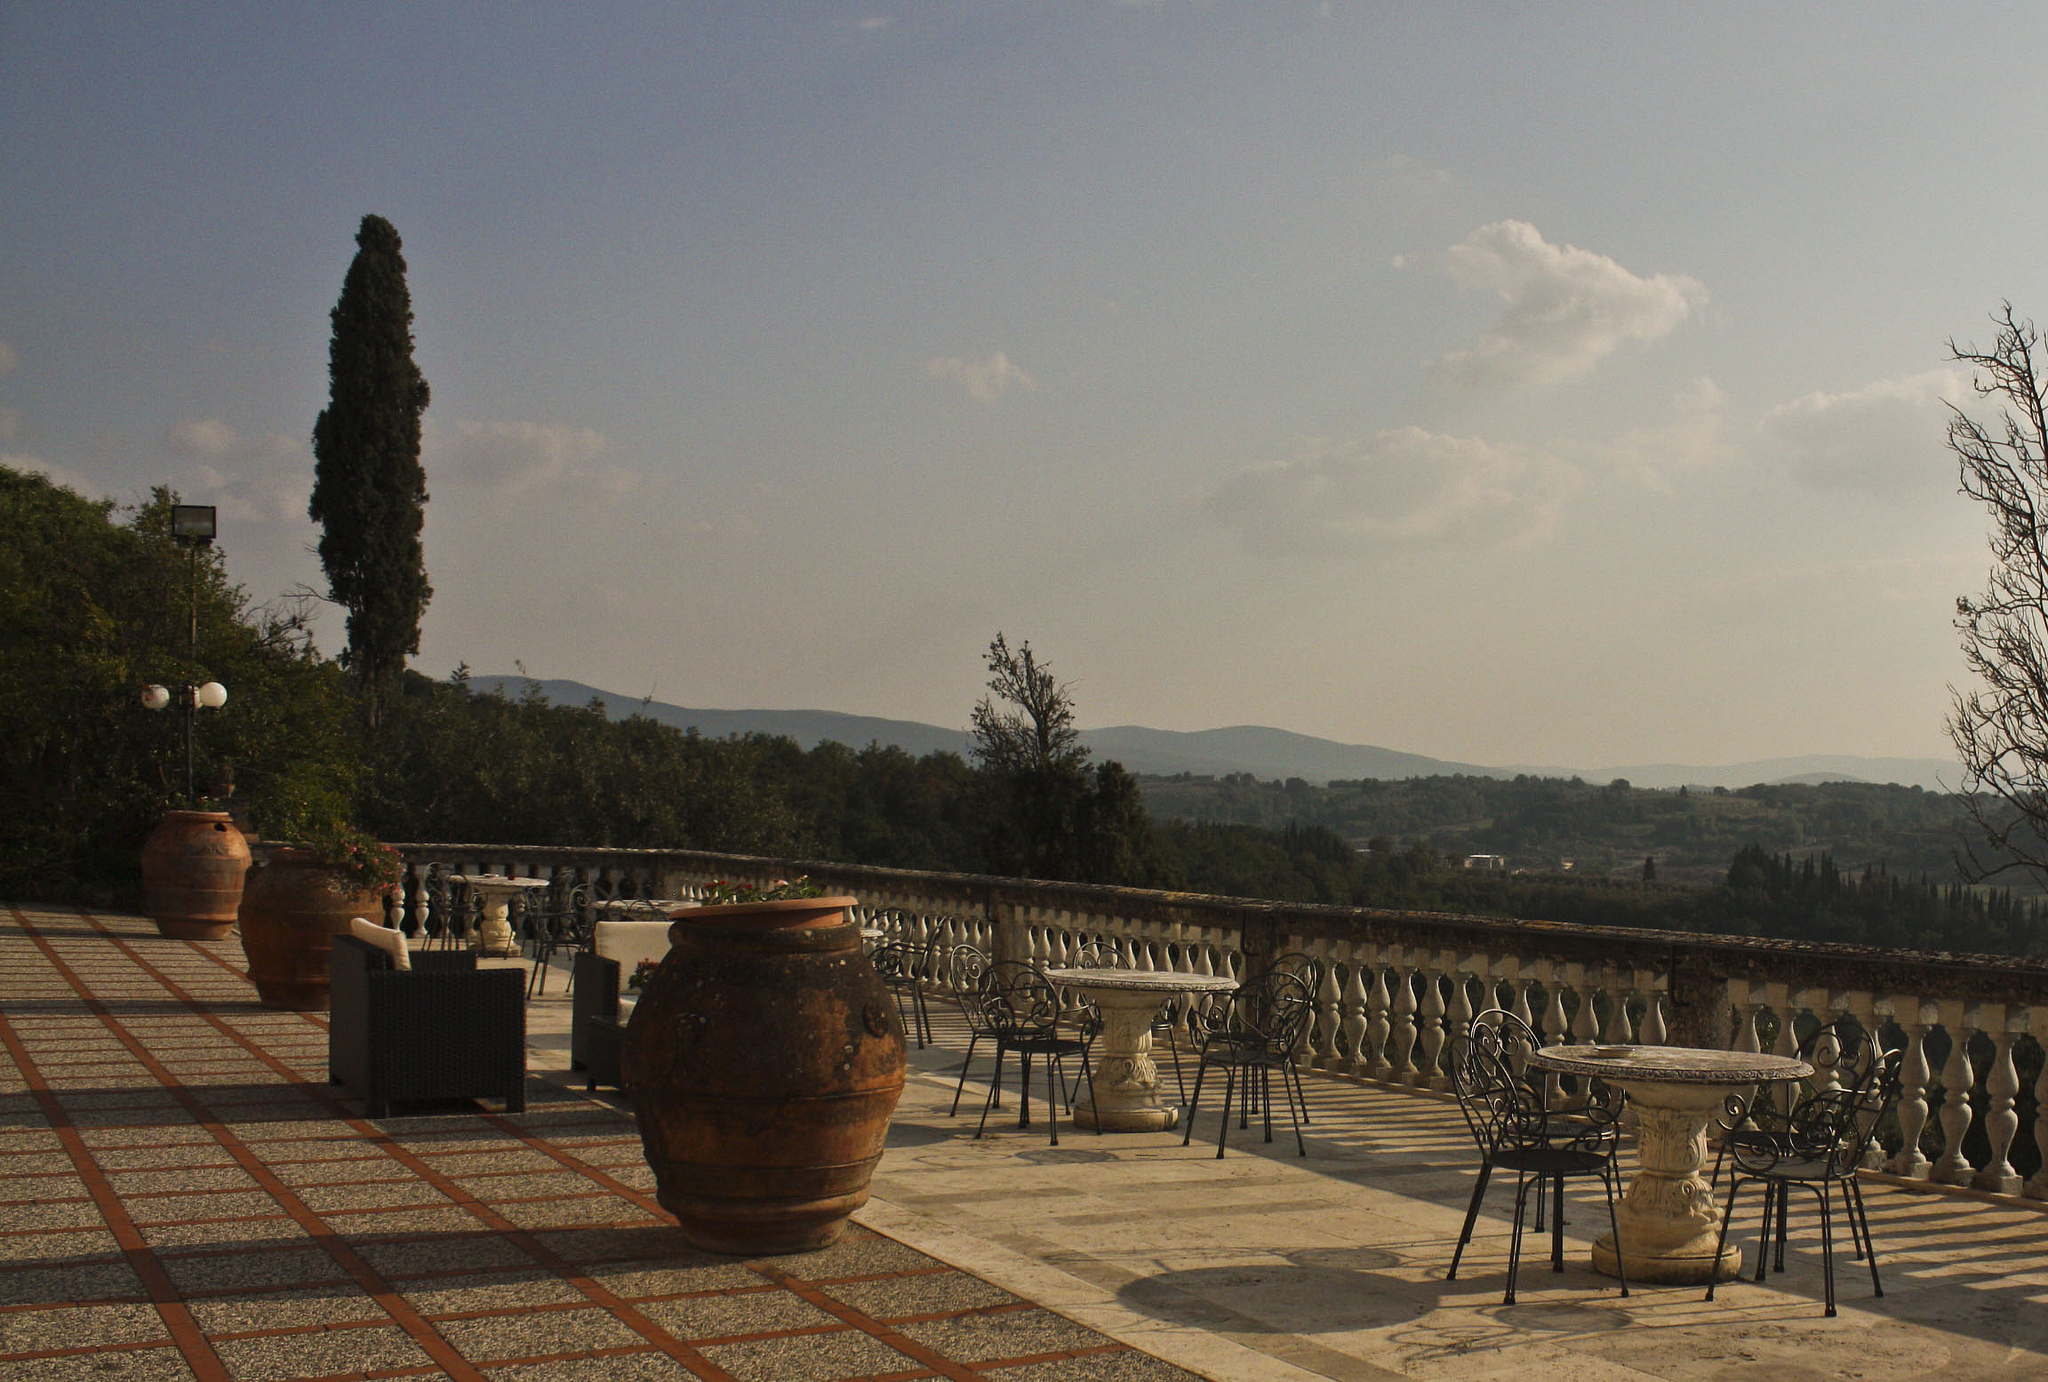 Italian villas consistently rank among the best family accommodation abroad ... photo by CC user ashleyhexum66 on Flickr